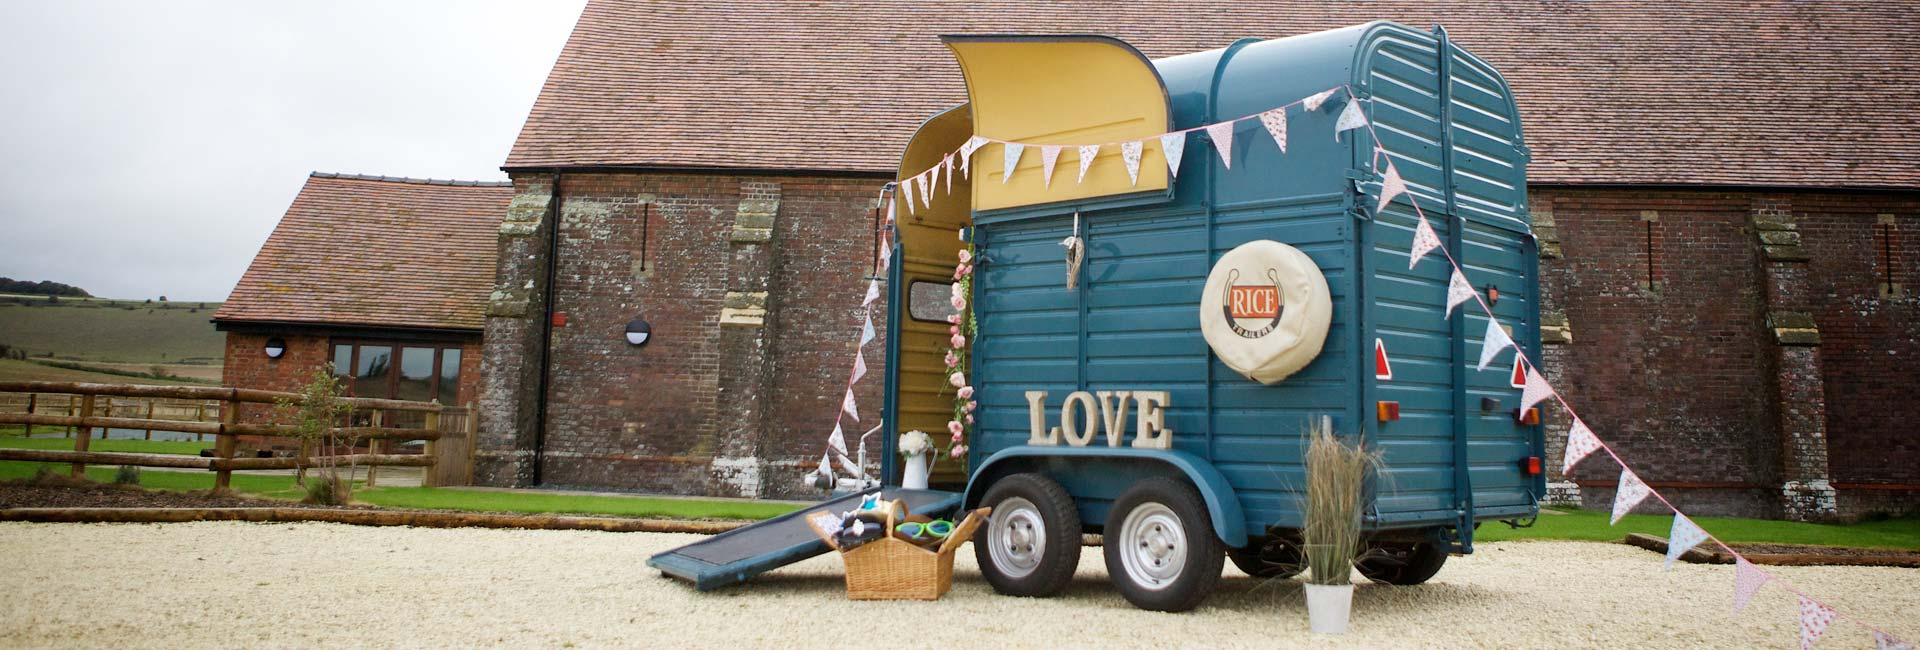 Why Book an Unusual Photo Booth? - Horse Box Photo BoothHorse Box